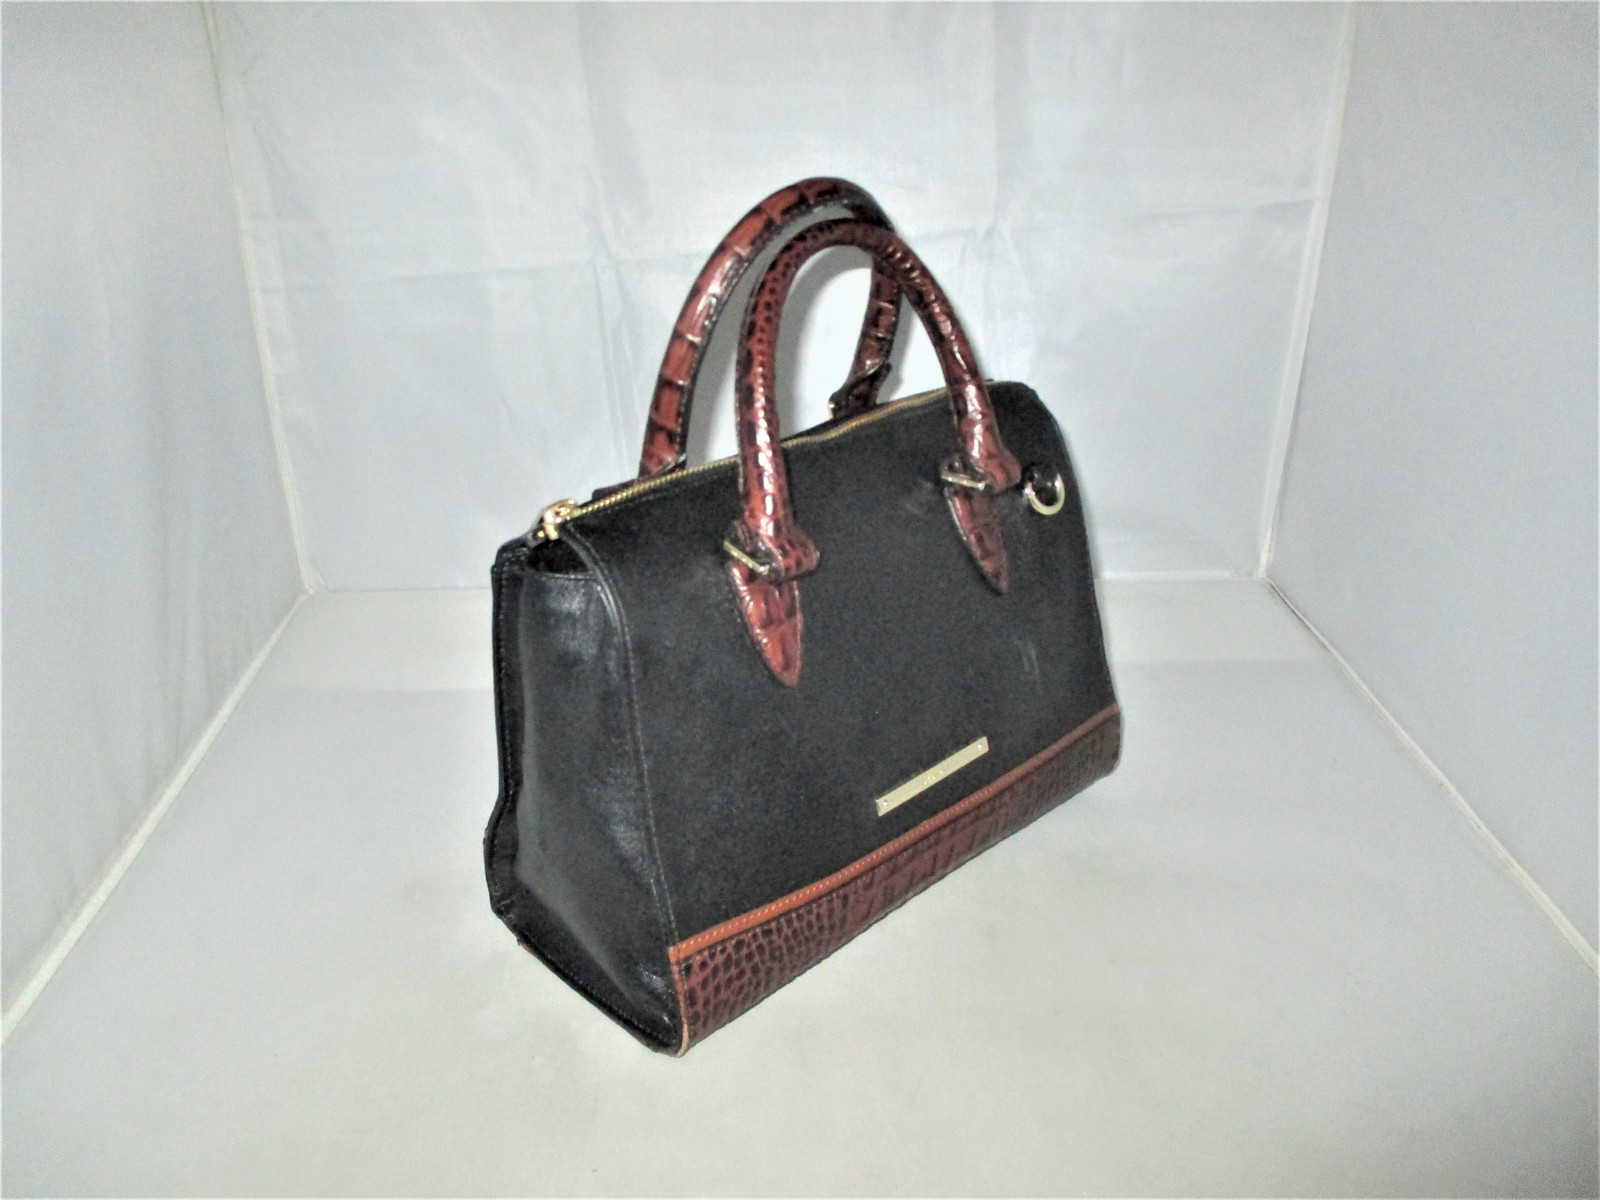 Brahmin Tuscan Tri-Texture Anywhere Convertible Satchel, Shoulder Bag,Tote $255 image 3